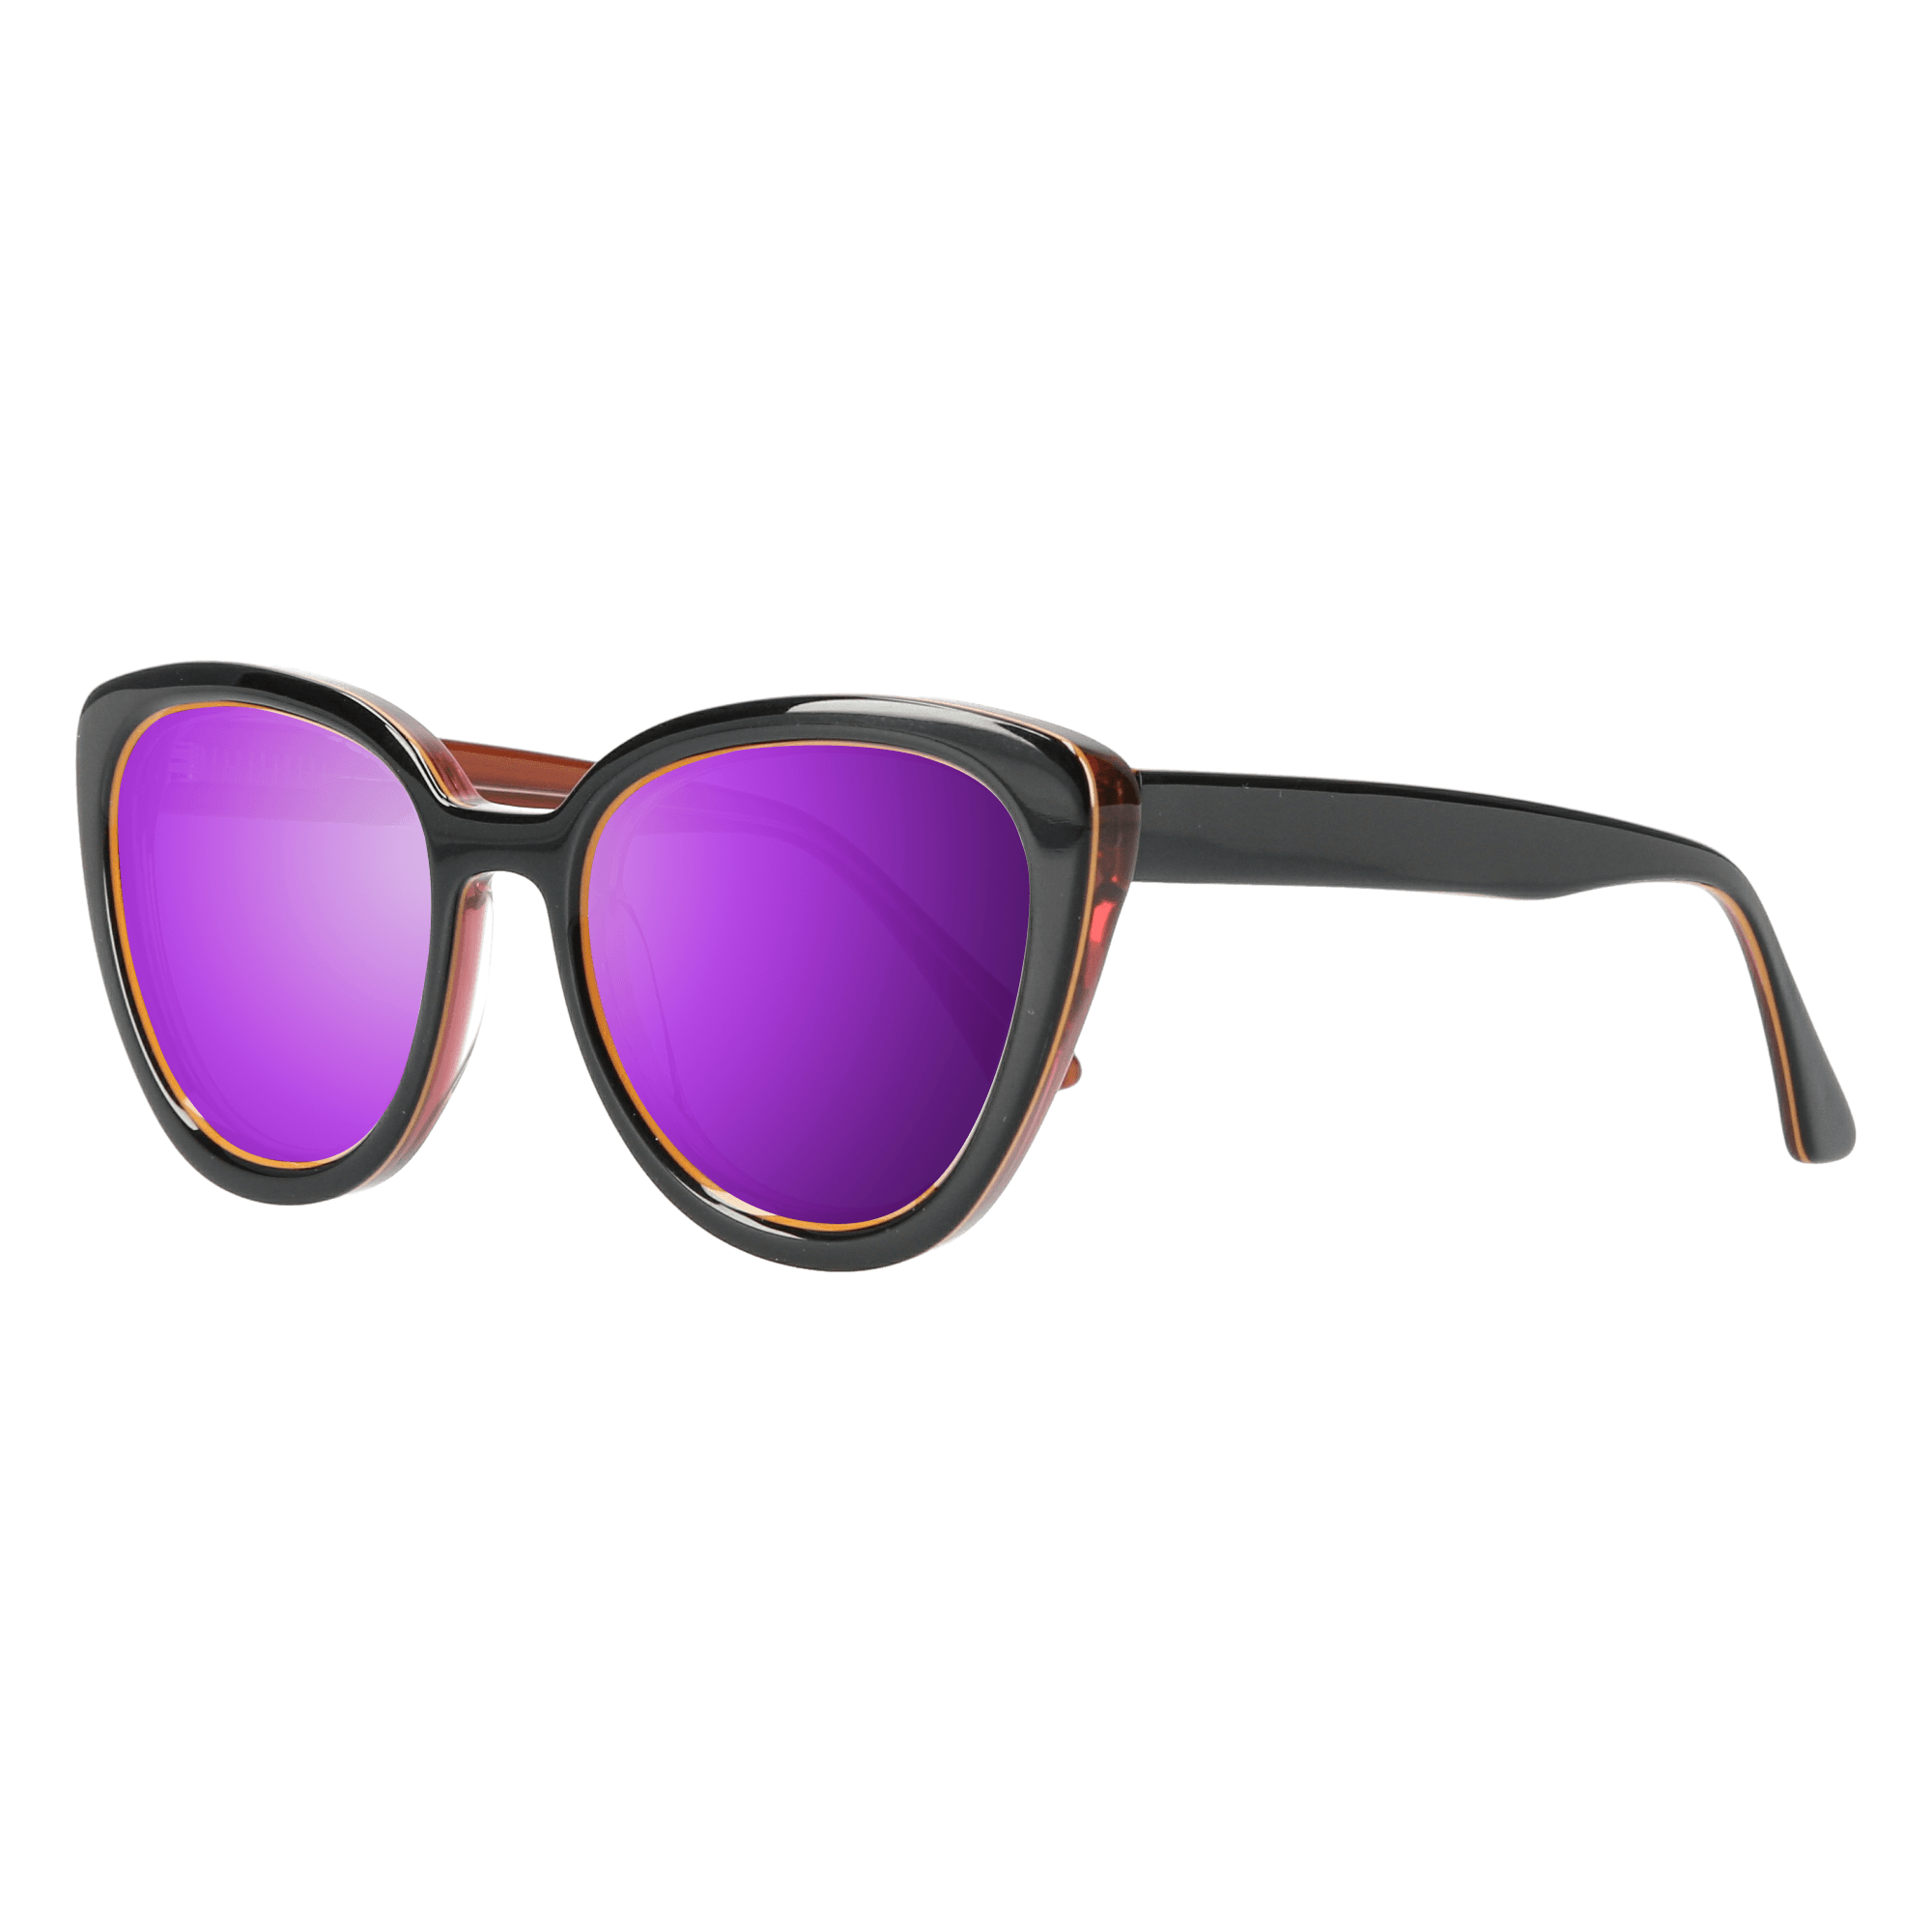 LA'JEAN - BLACK-BROWN SUNGLASSES SAINT REETS